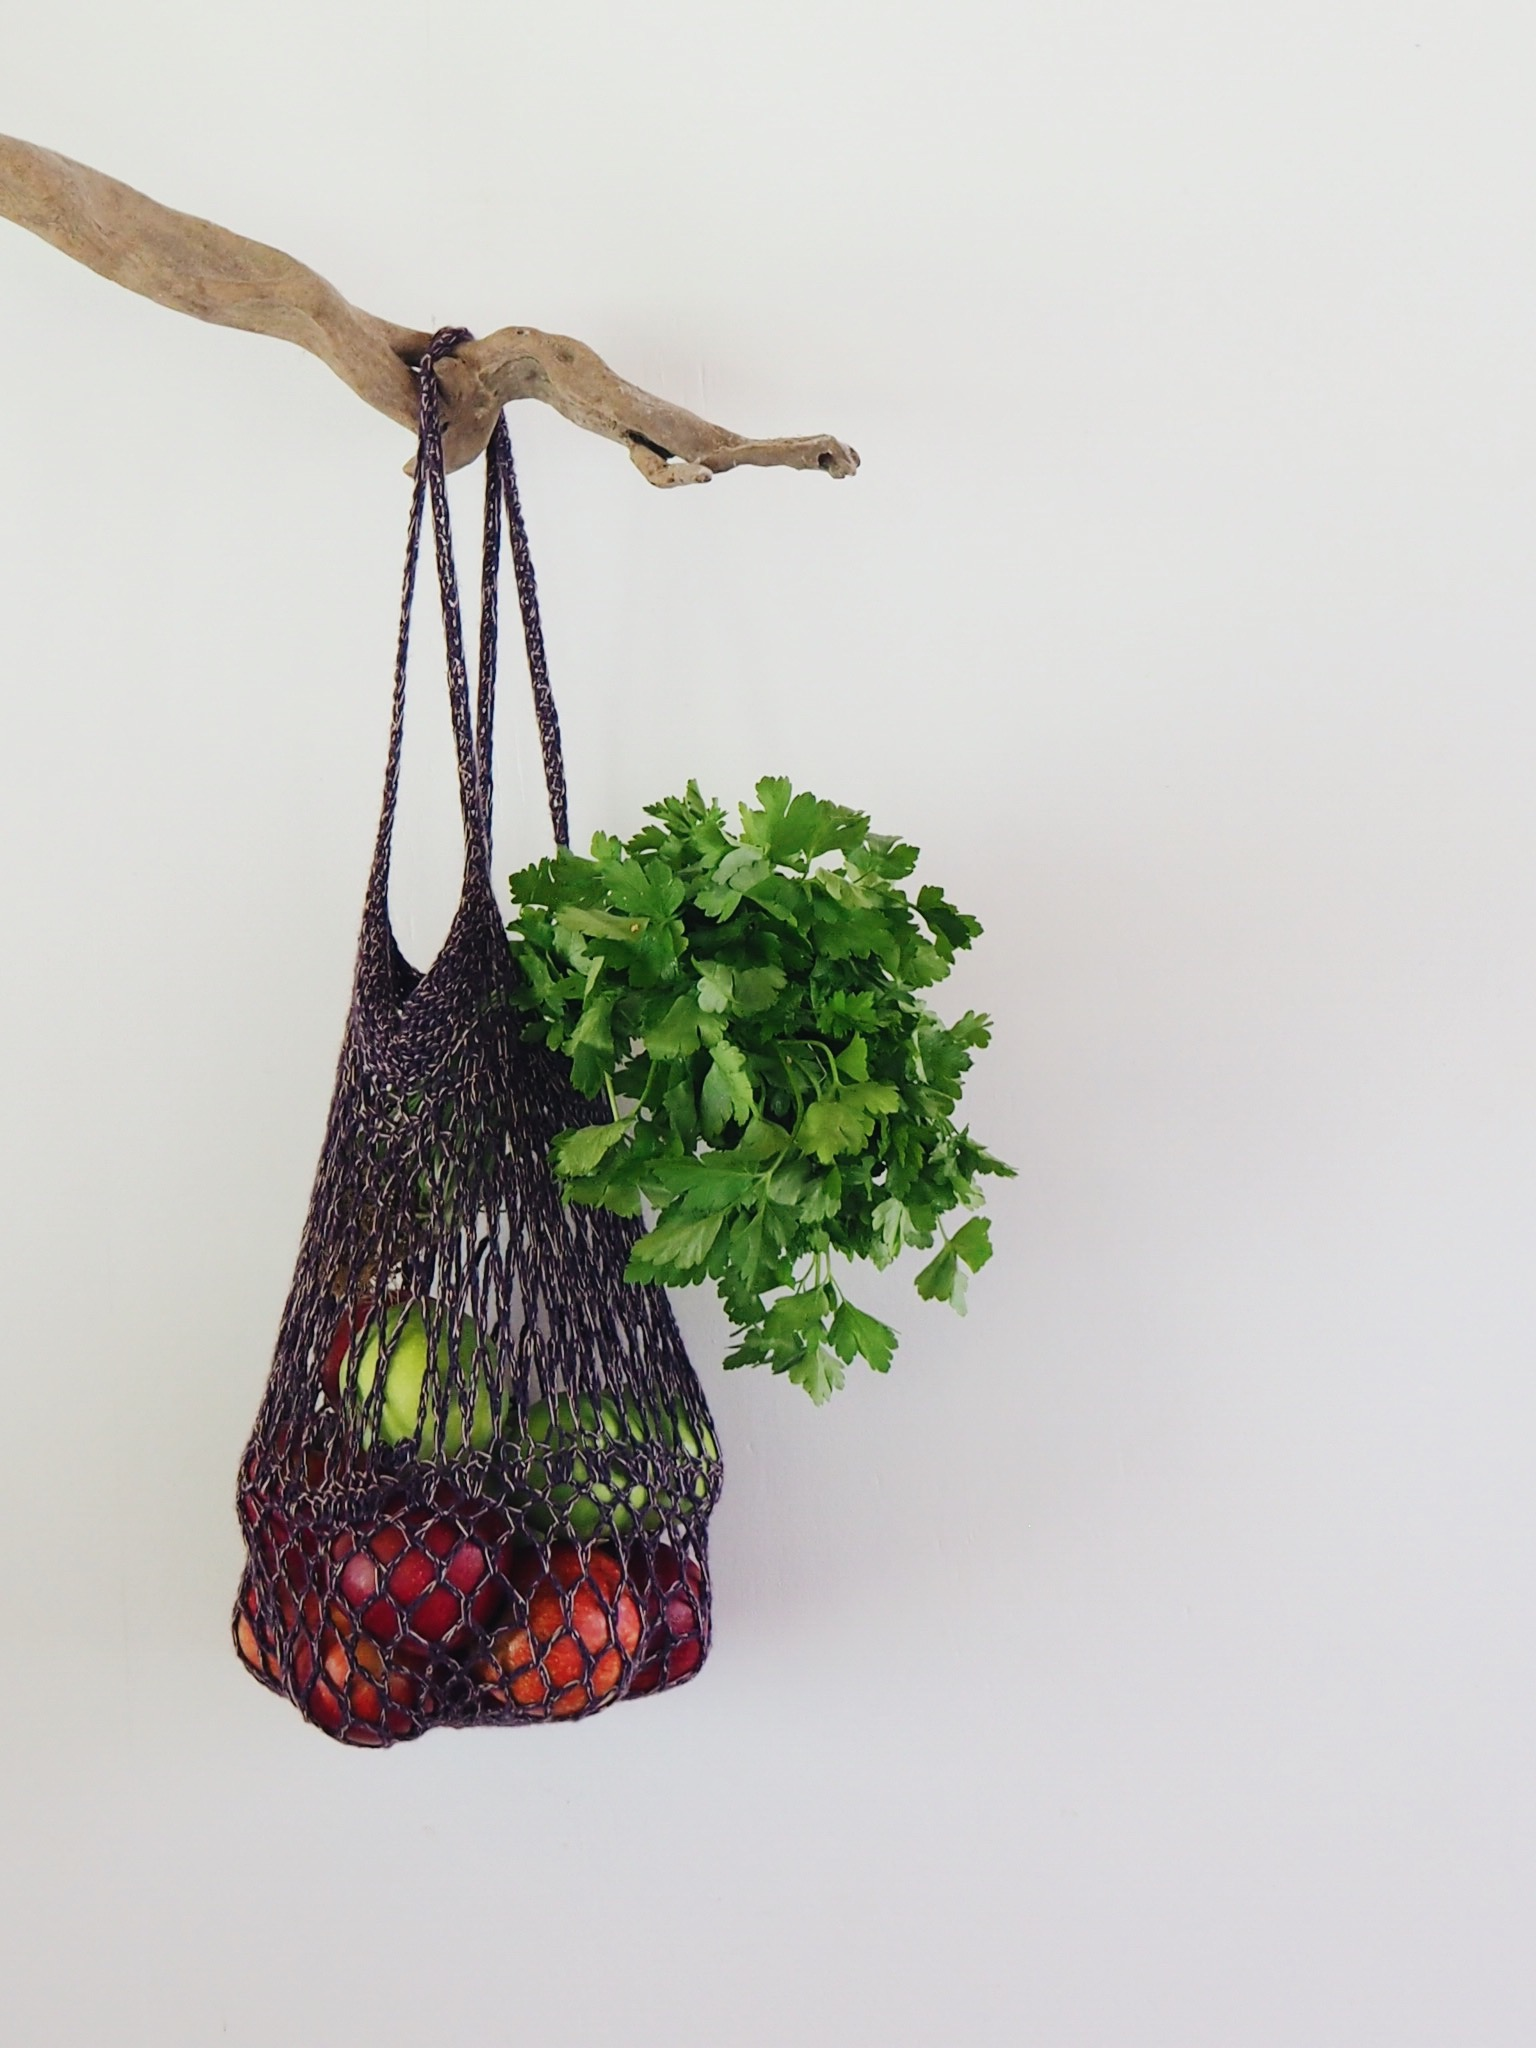 Crochet String Bag make your own - pattern by Ellie Beck Petalplum